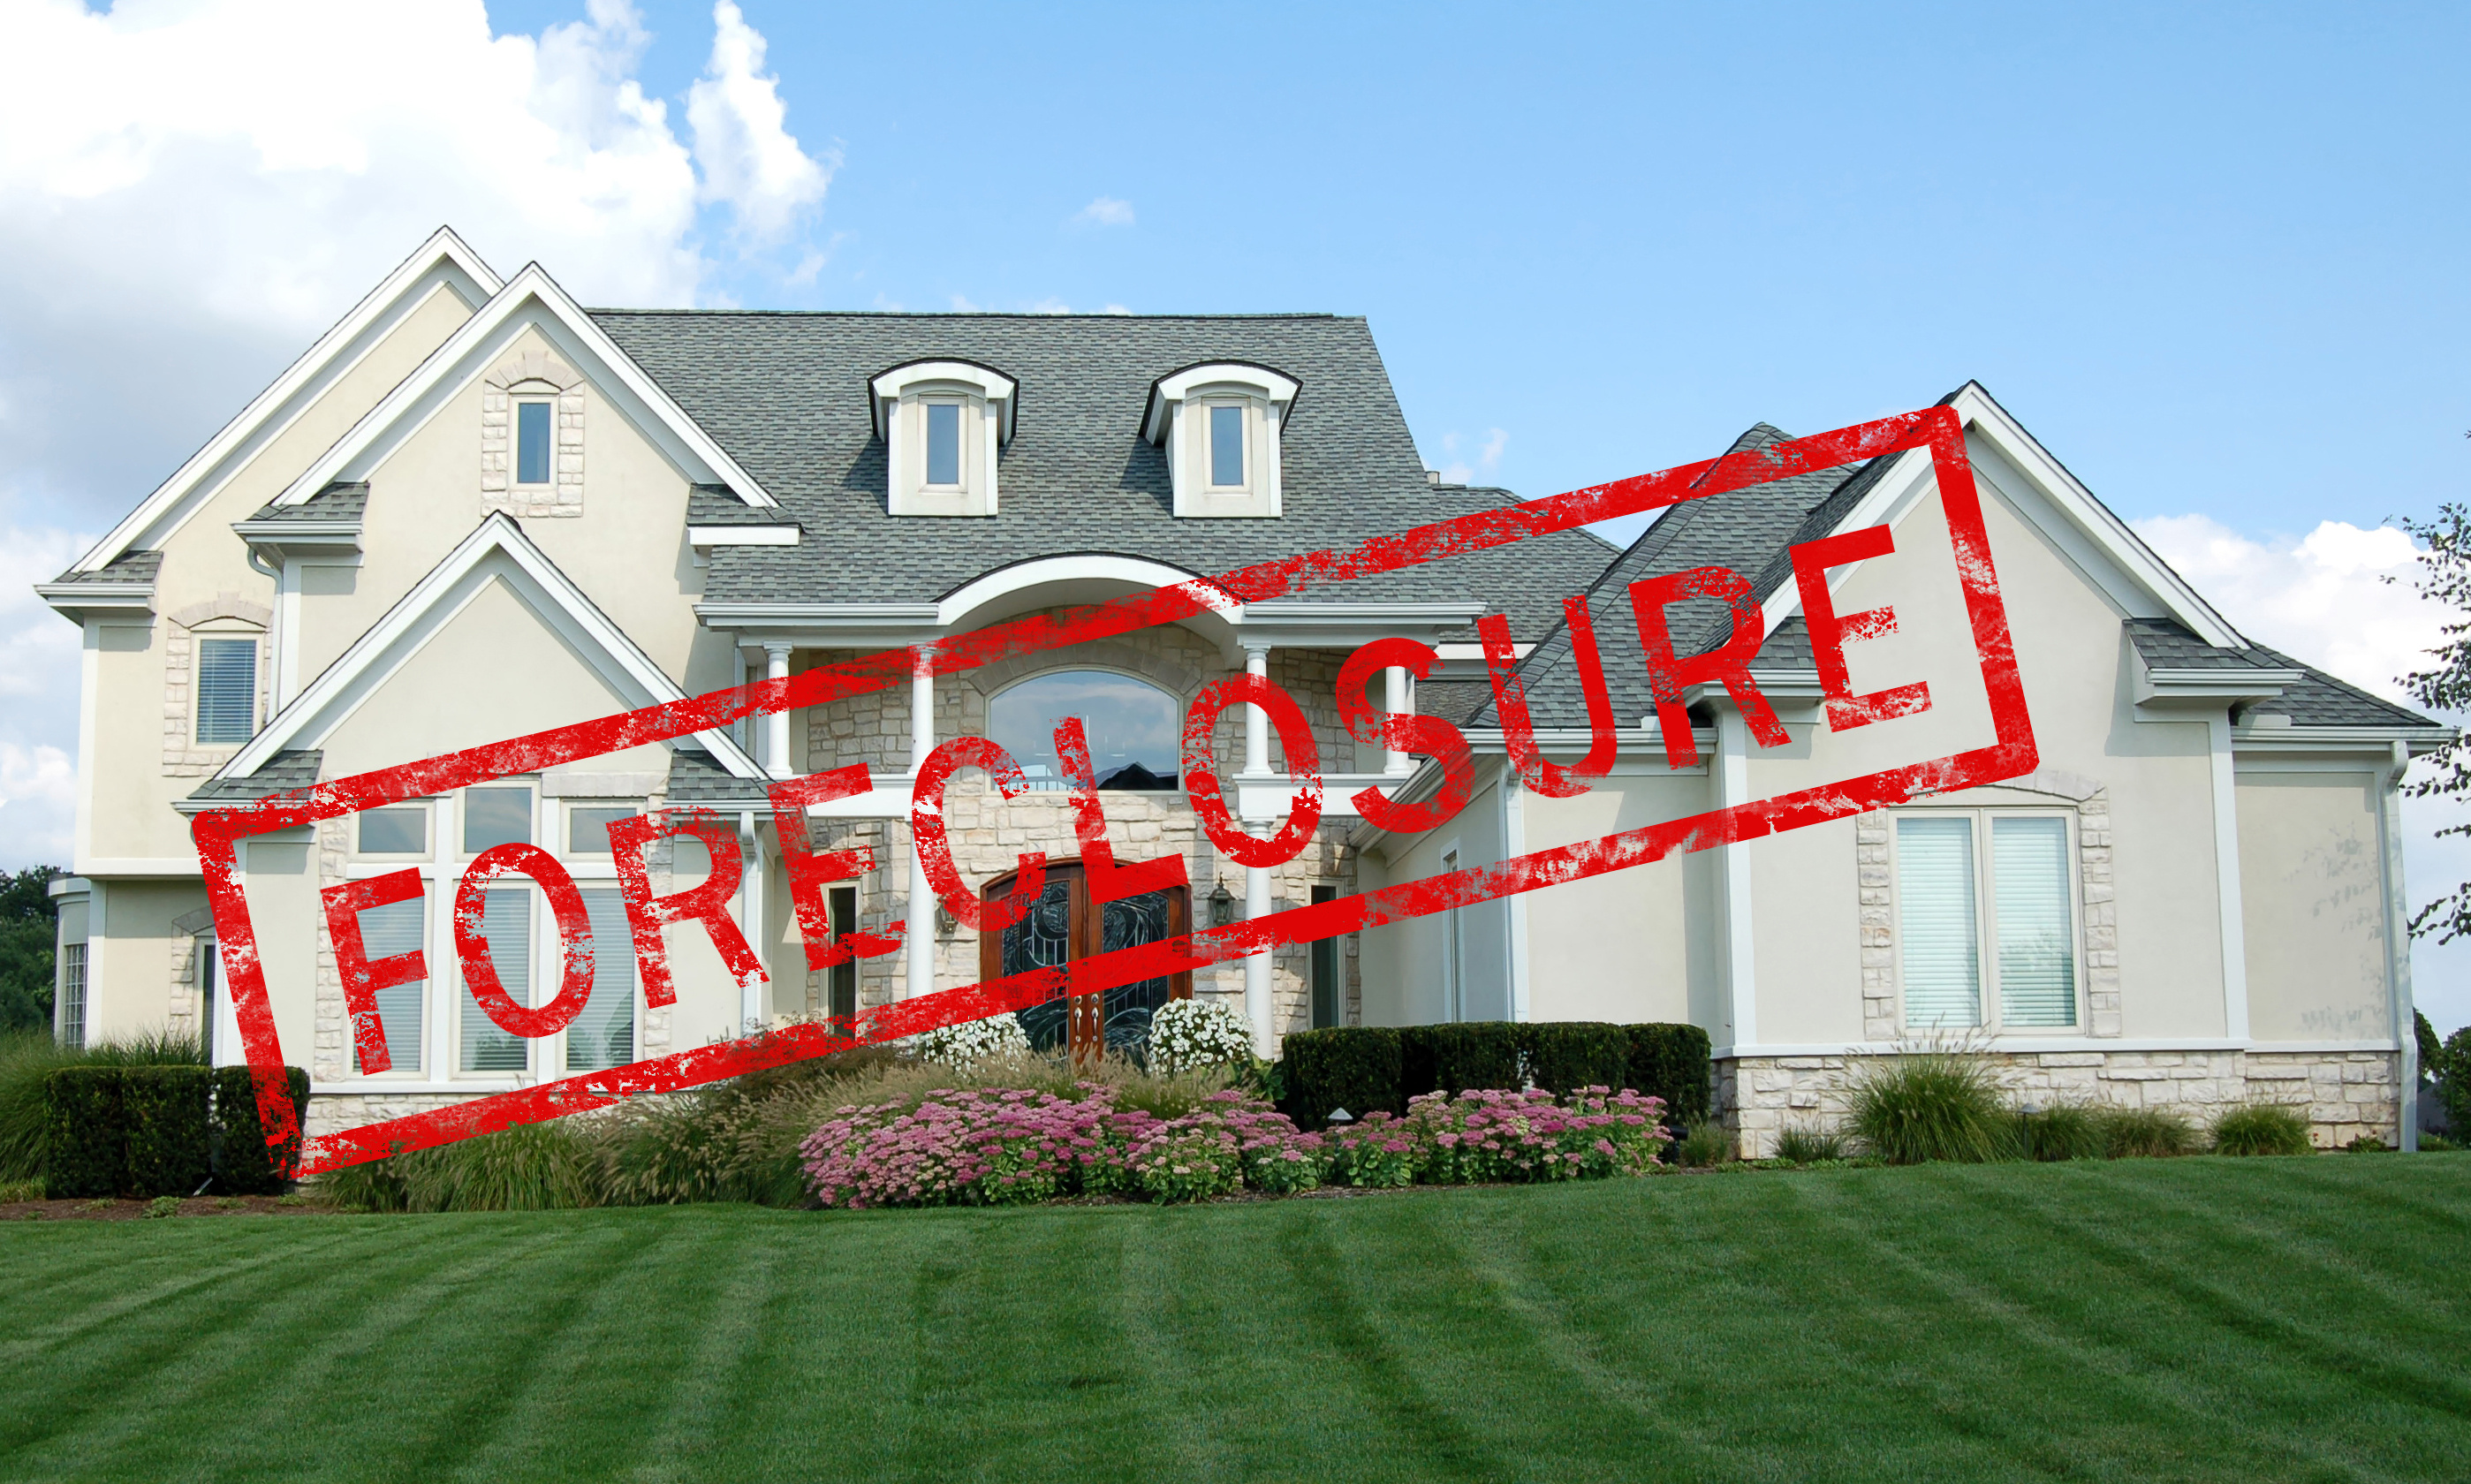 Call Barnes Appraisal Company to discuss appraisals regarding Comanche foreclosures